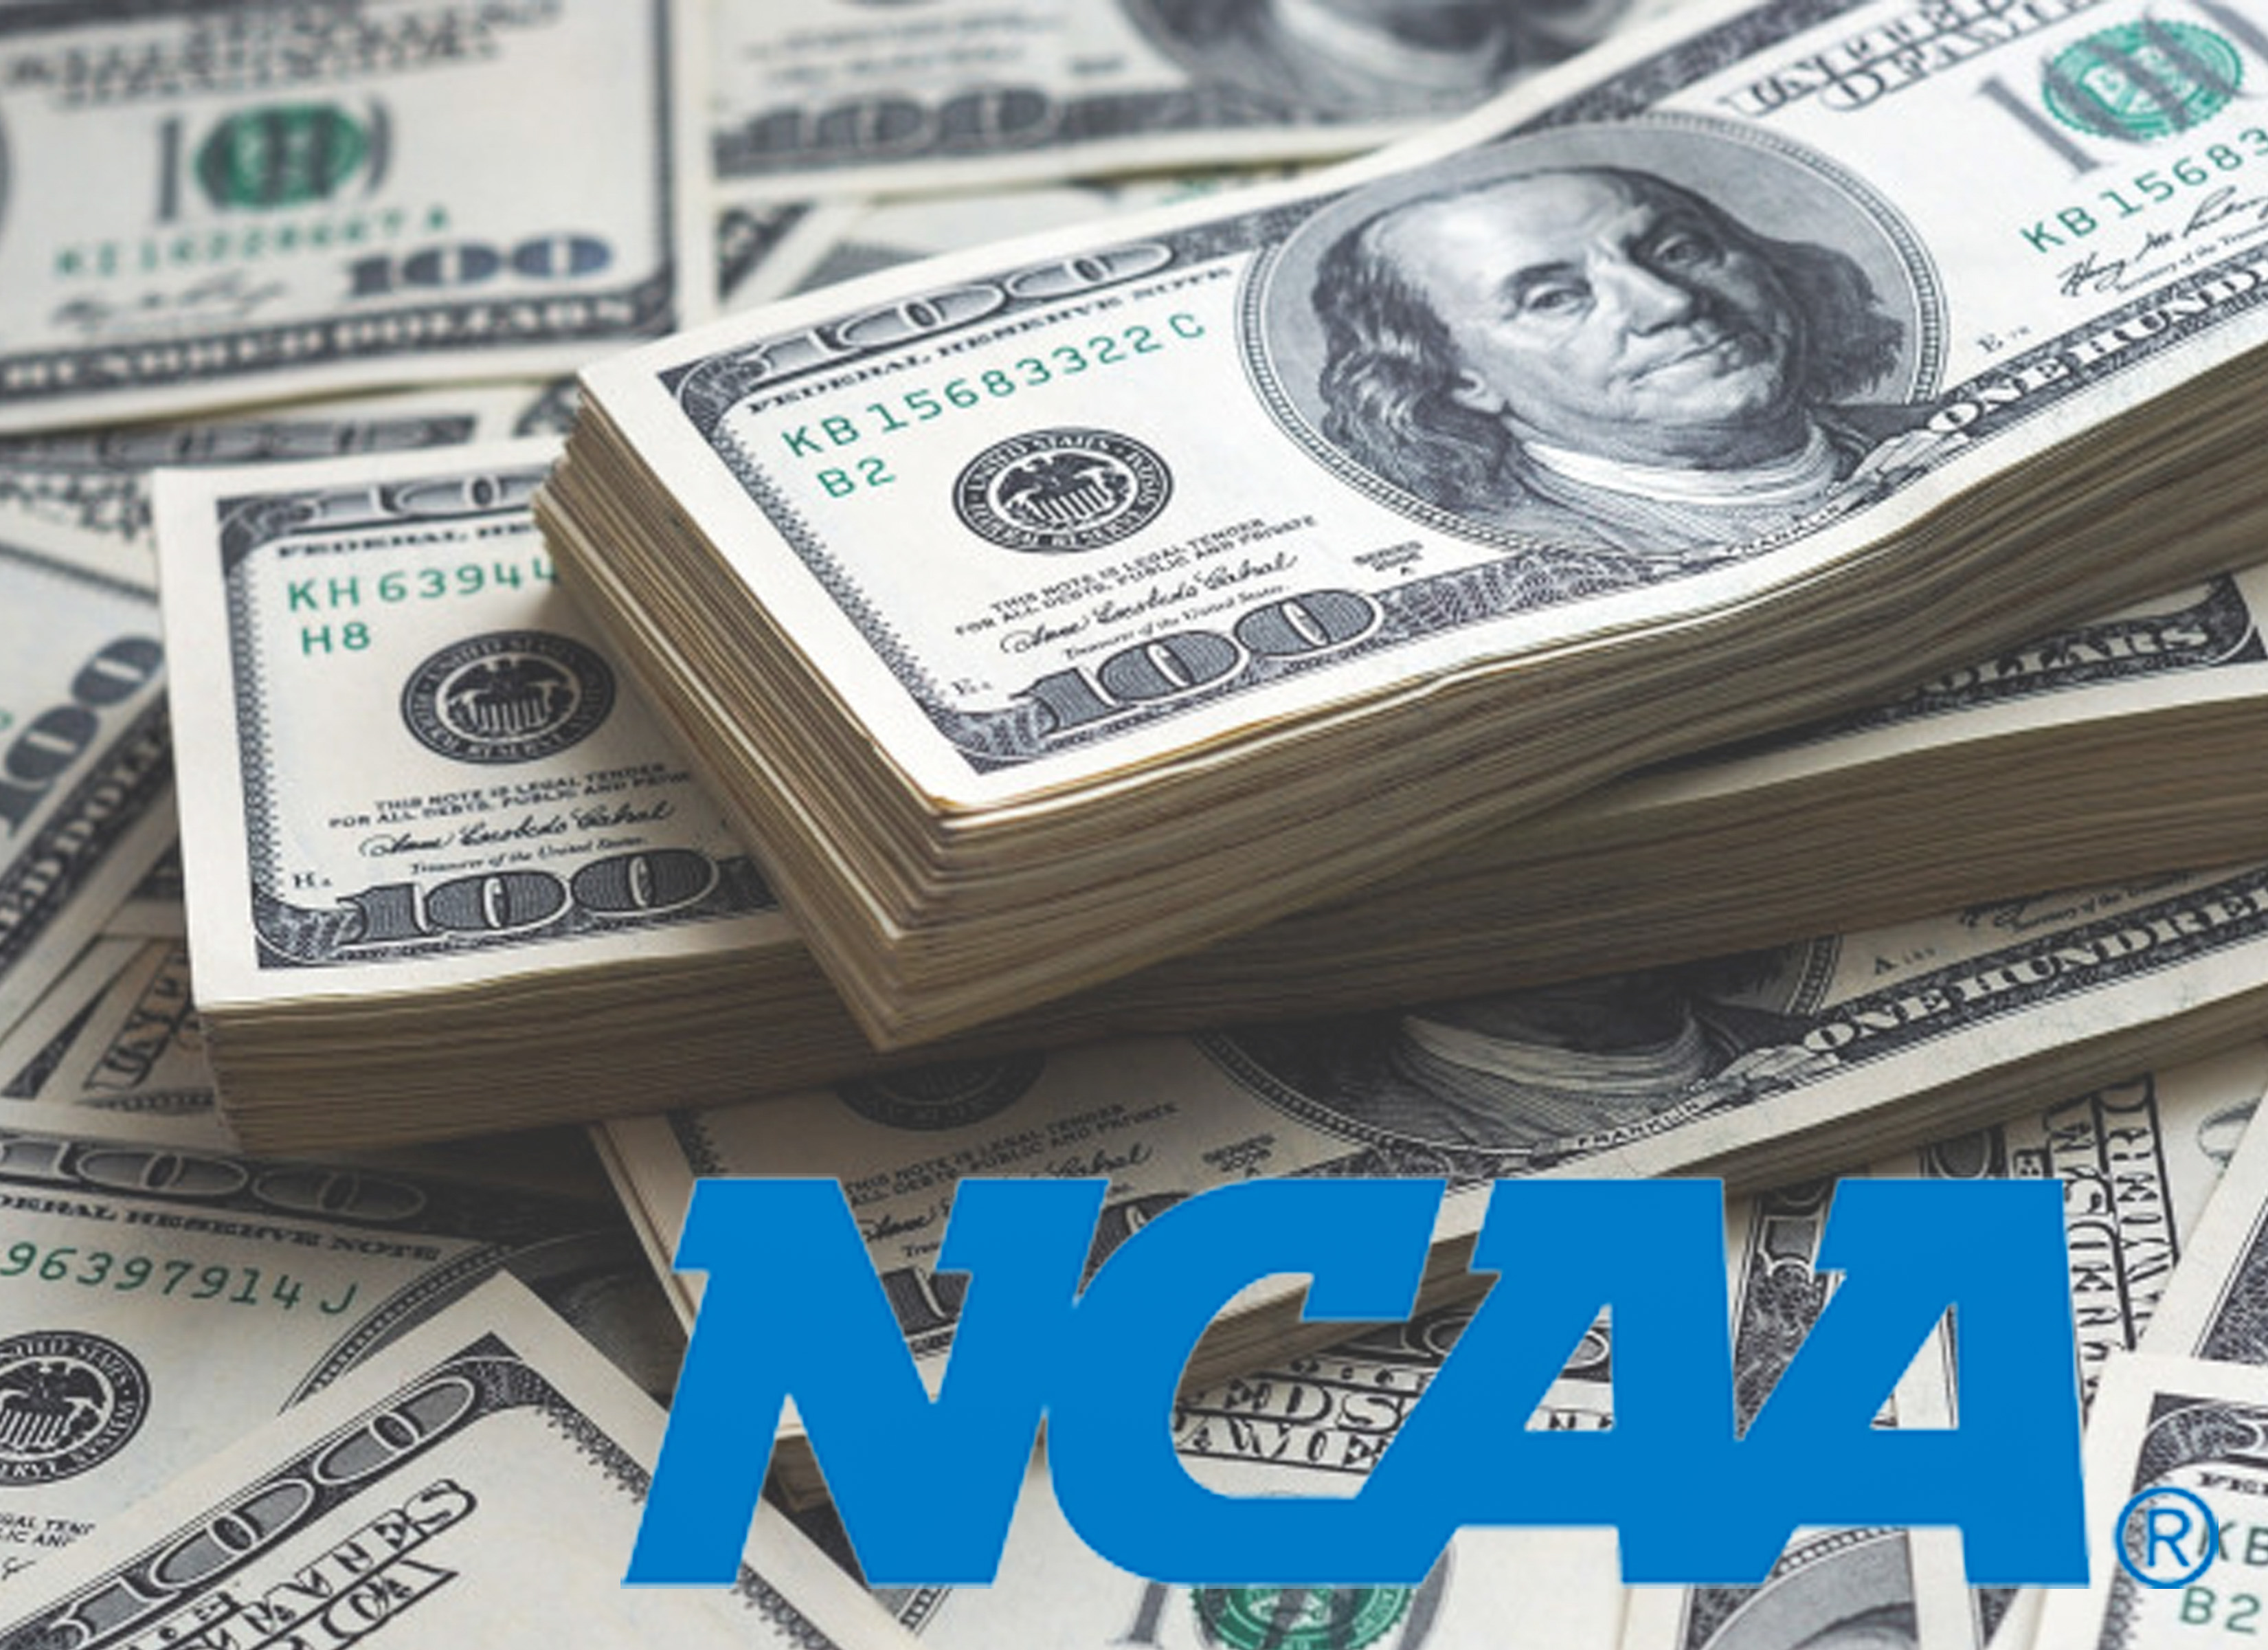 The debate regarding paying college athletes continues. Online photo